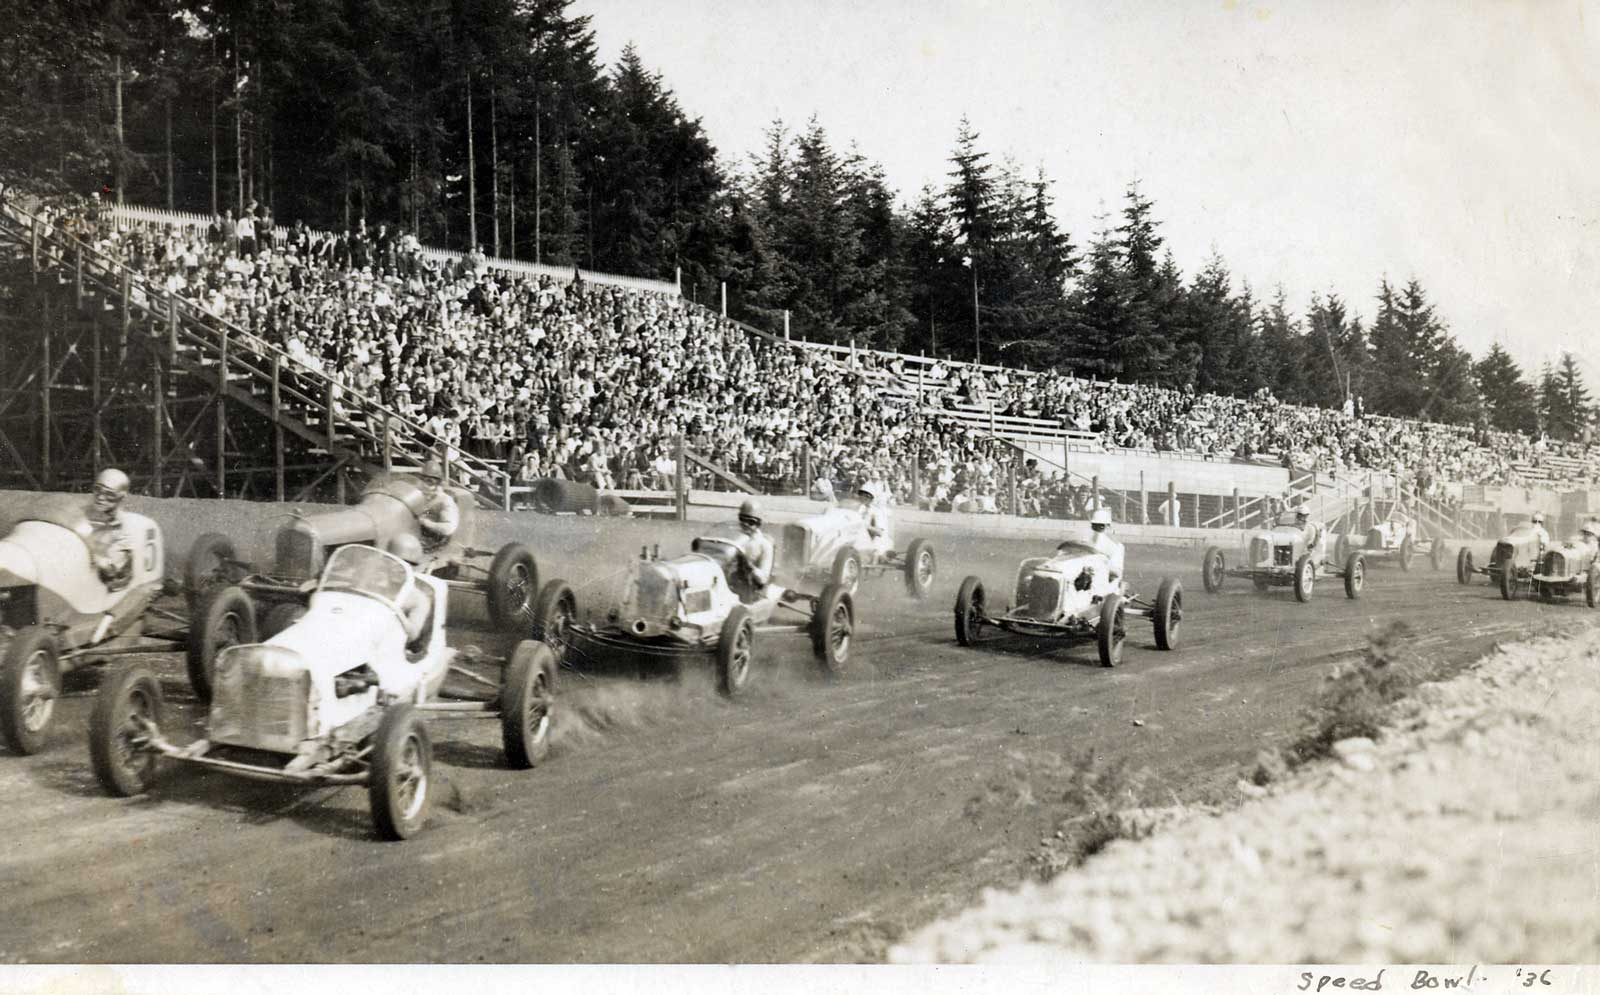 Seattle Now & Then: The Seattle Speed Bowl